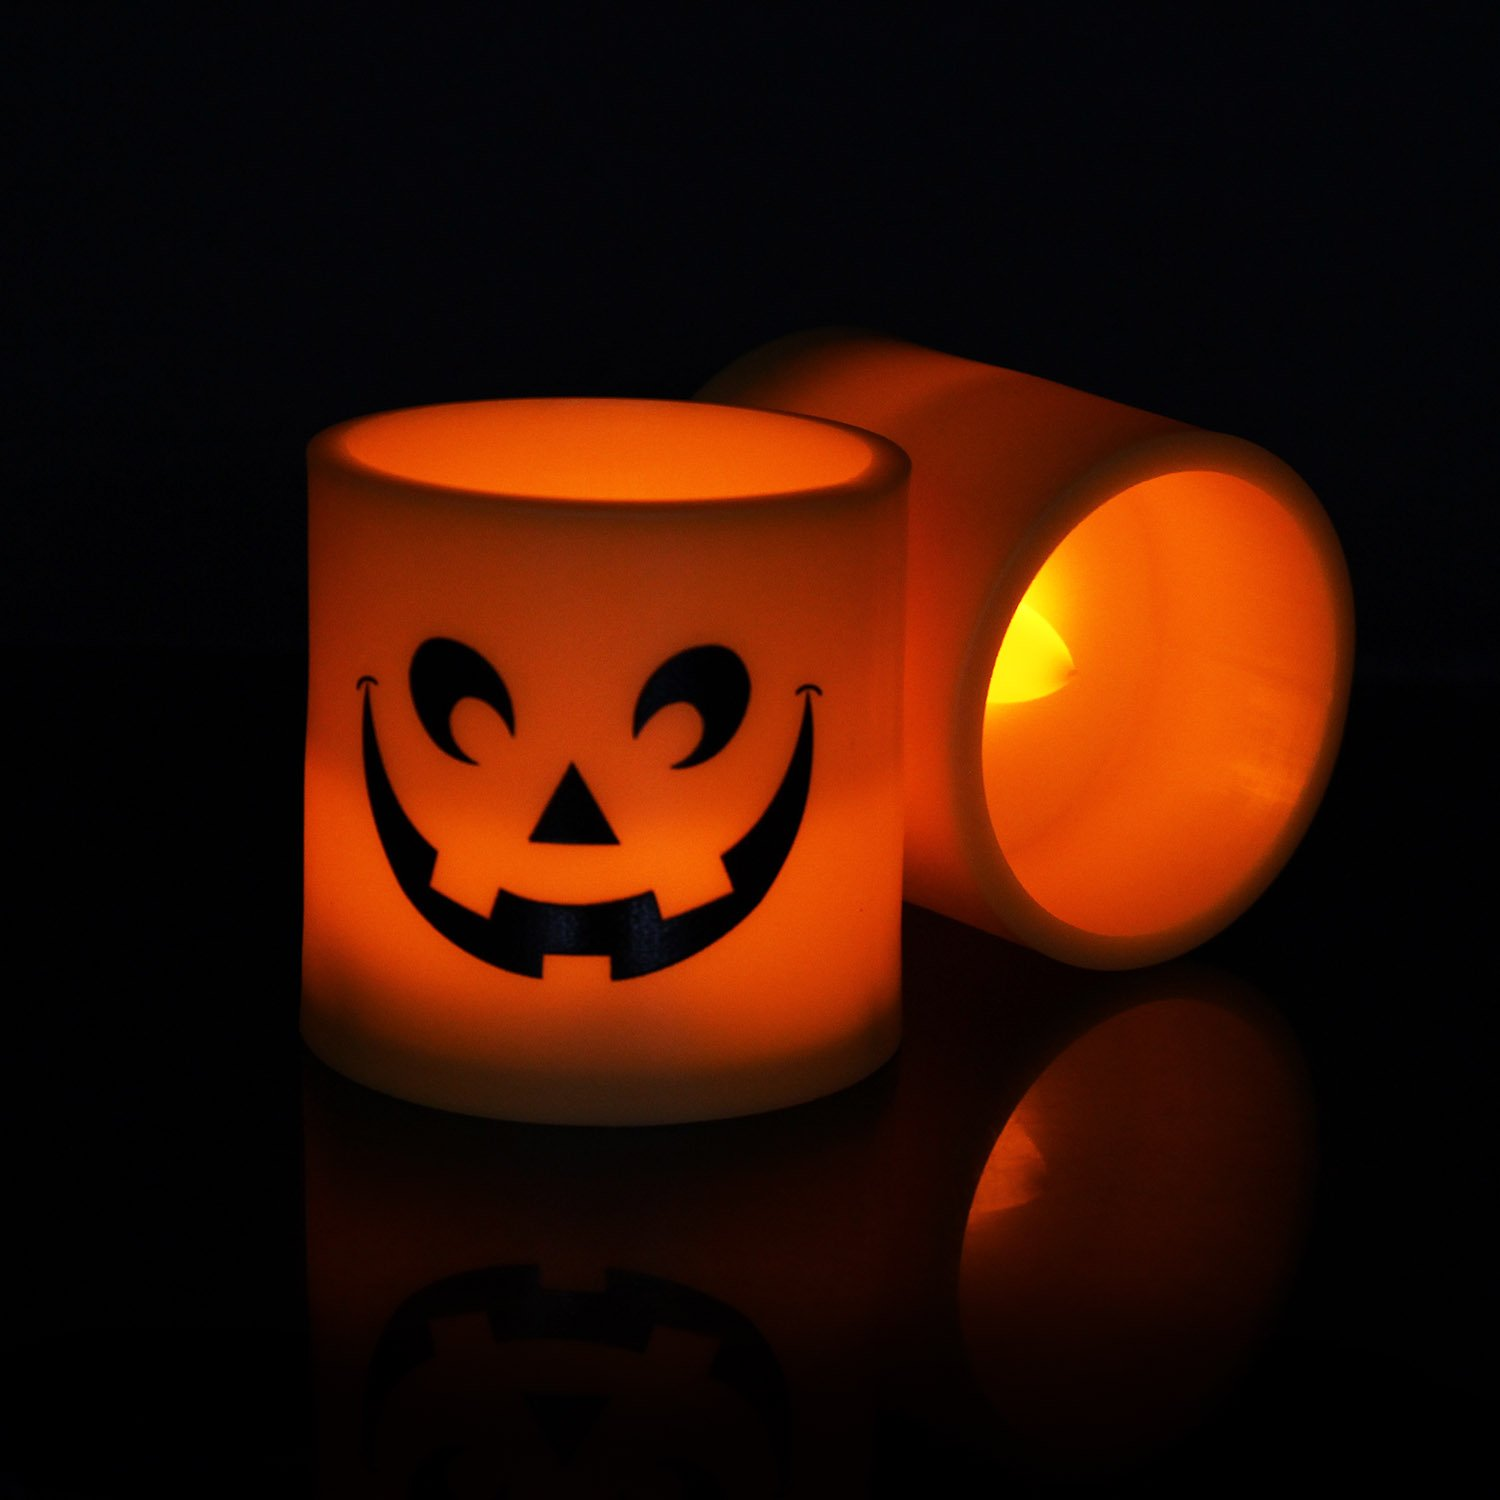 Halloween Pumpkin Light Yellow Flickering Led 6 Pcs Tea Light Flameless Candle, Battery-Operated Electronic Candles Special for Halloween Party Decorations Home Décor Christmas Decoration By Horeset